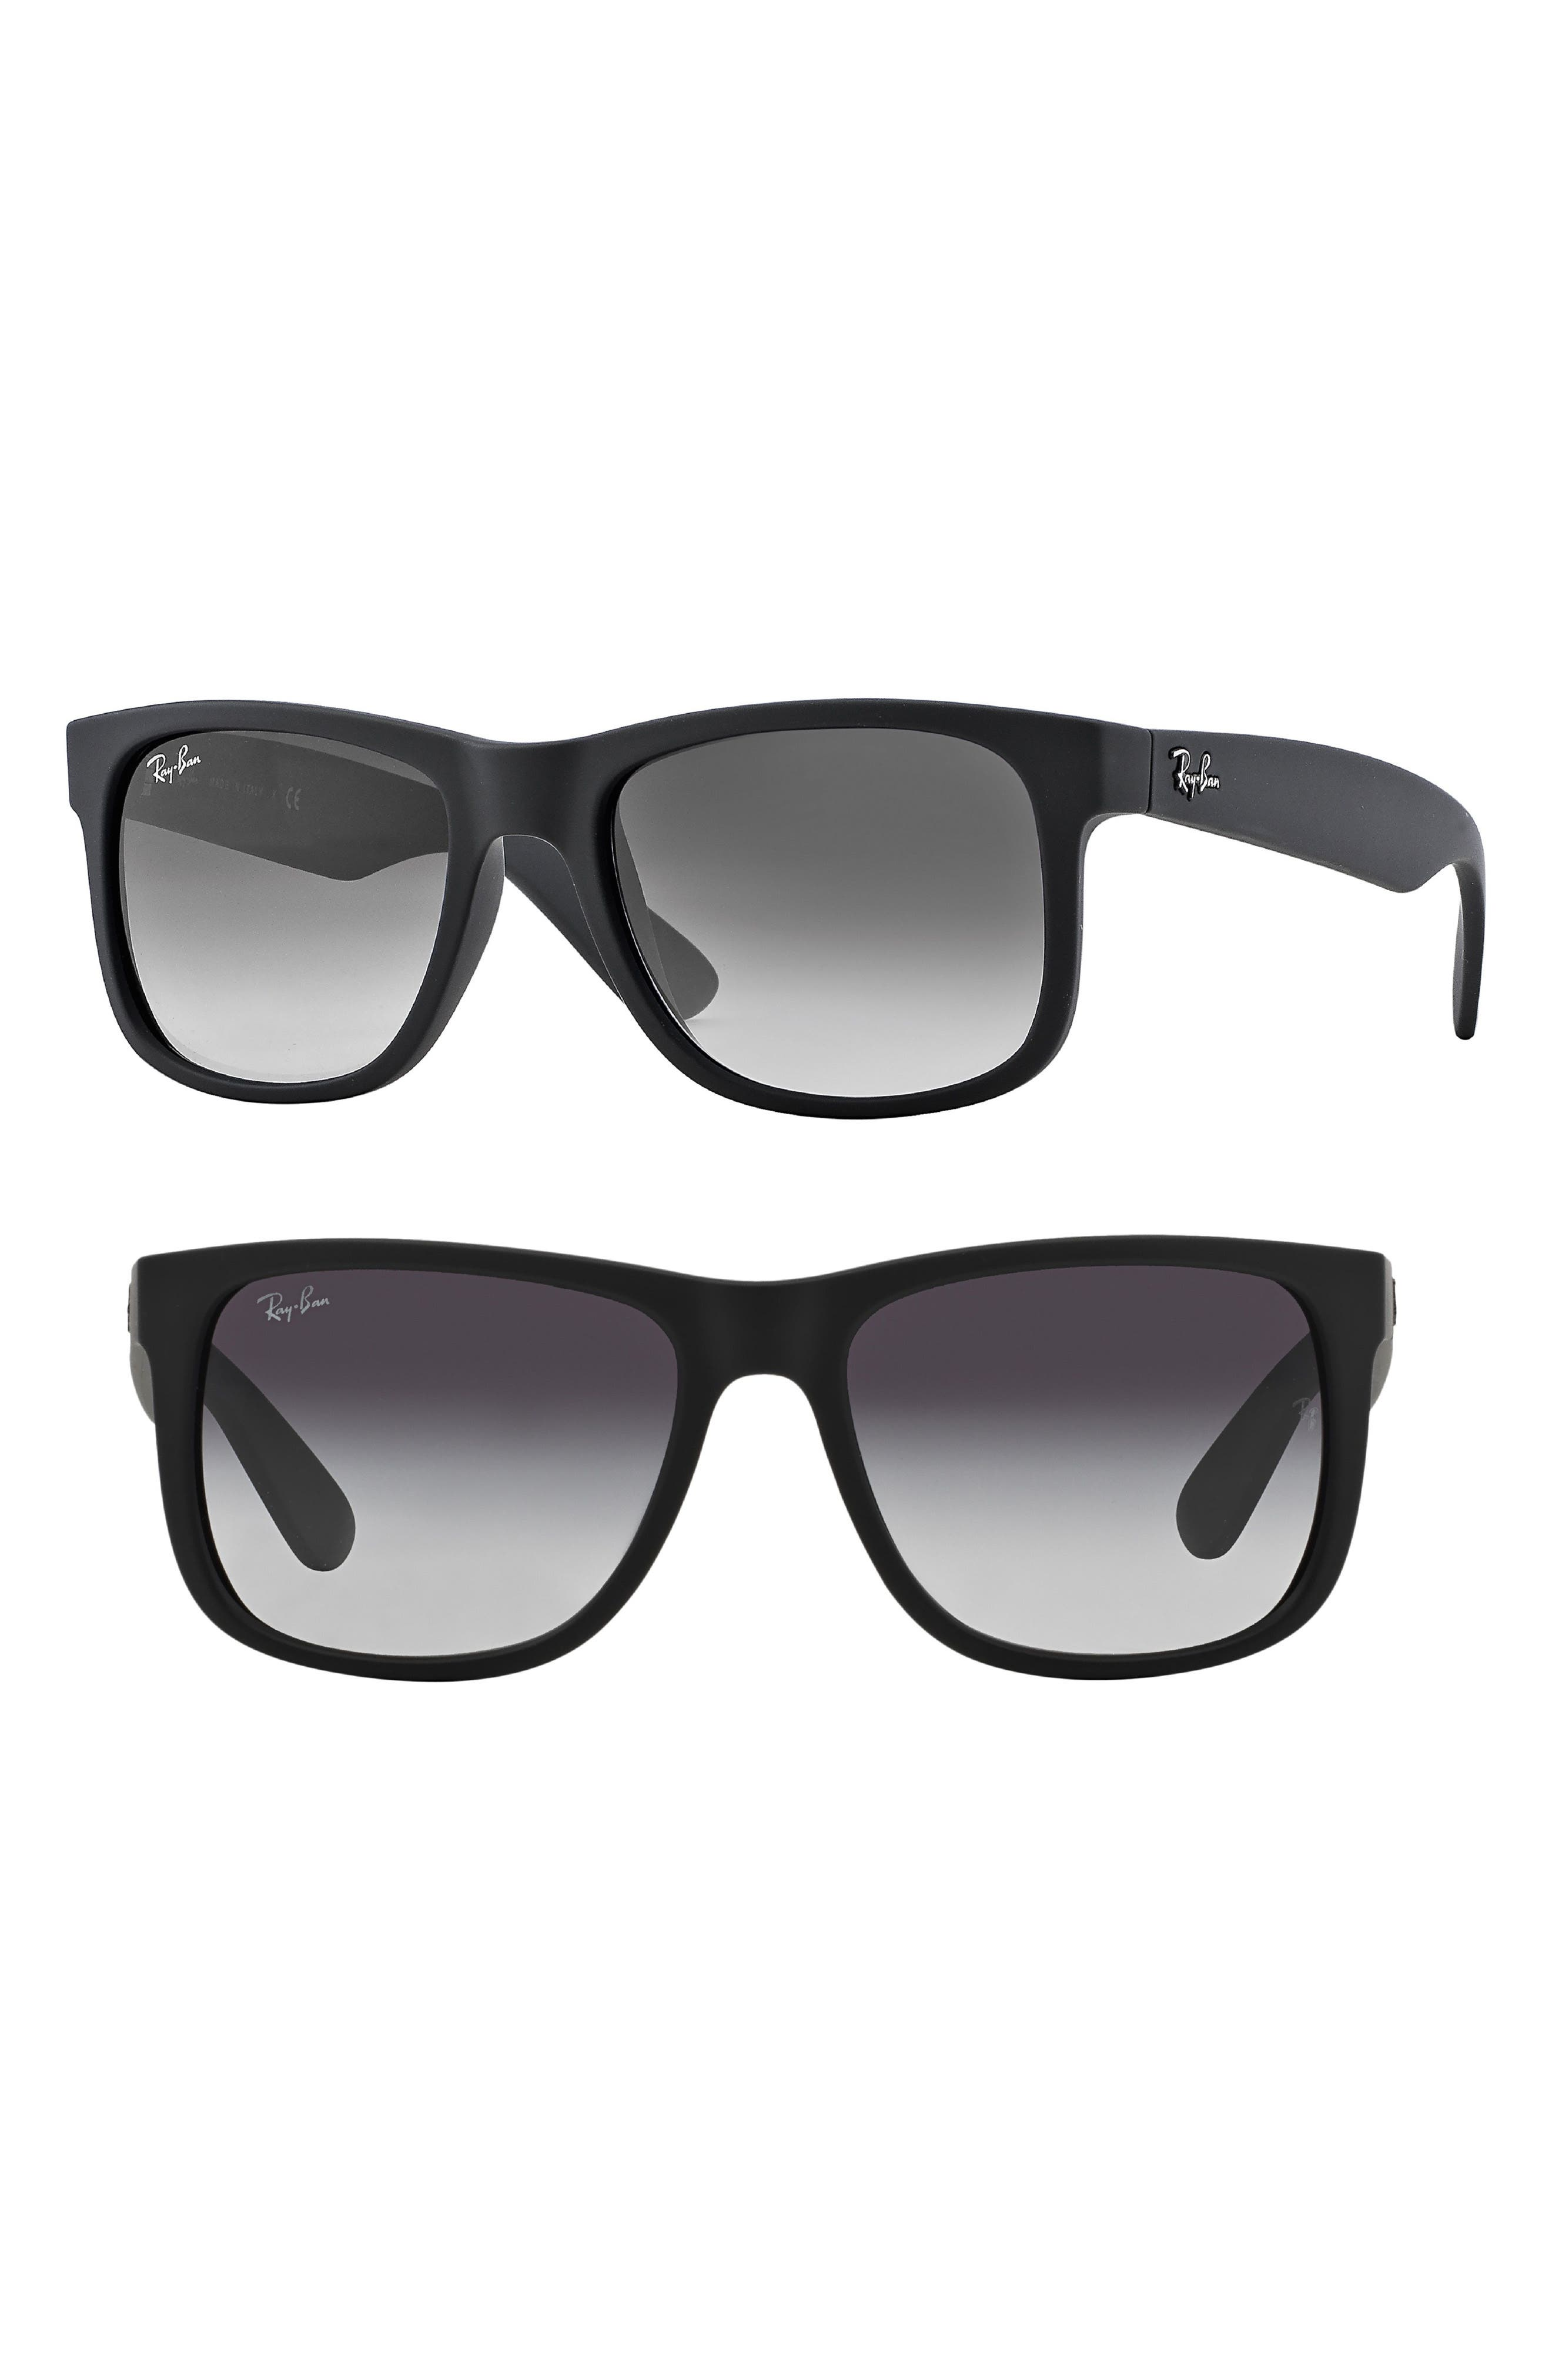 RAY-BAN Youngster 54mm Sunglasses, Main, color, BLACK